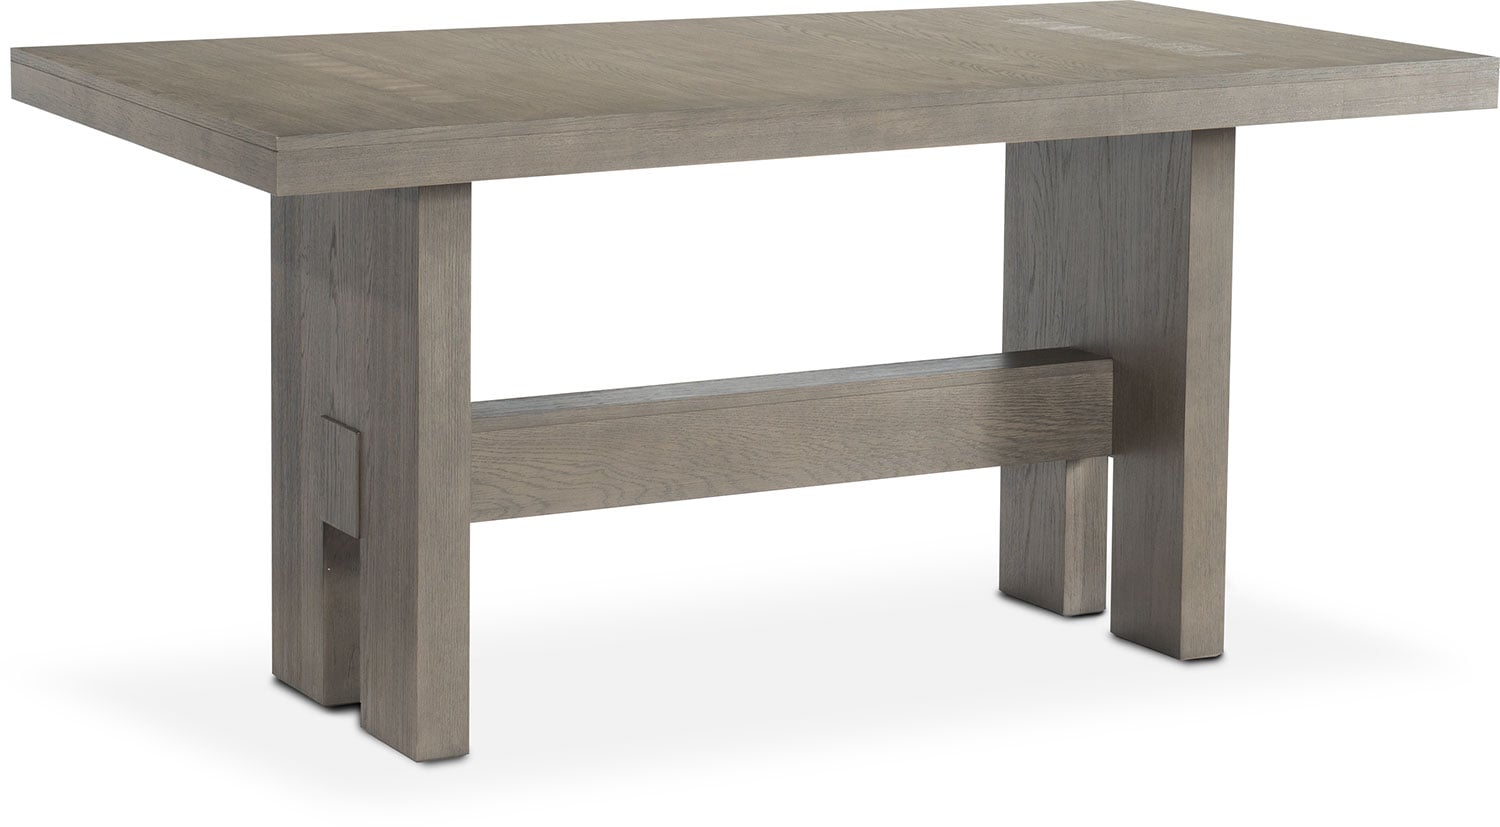 Merveilleux ... Dining Room Furniture   Malibu Rectangular Counter Height Wood Top Table    Gray